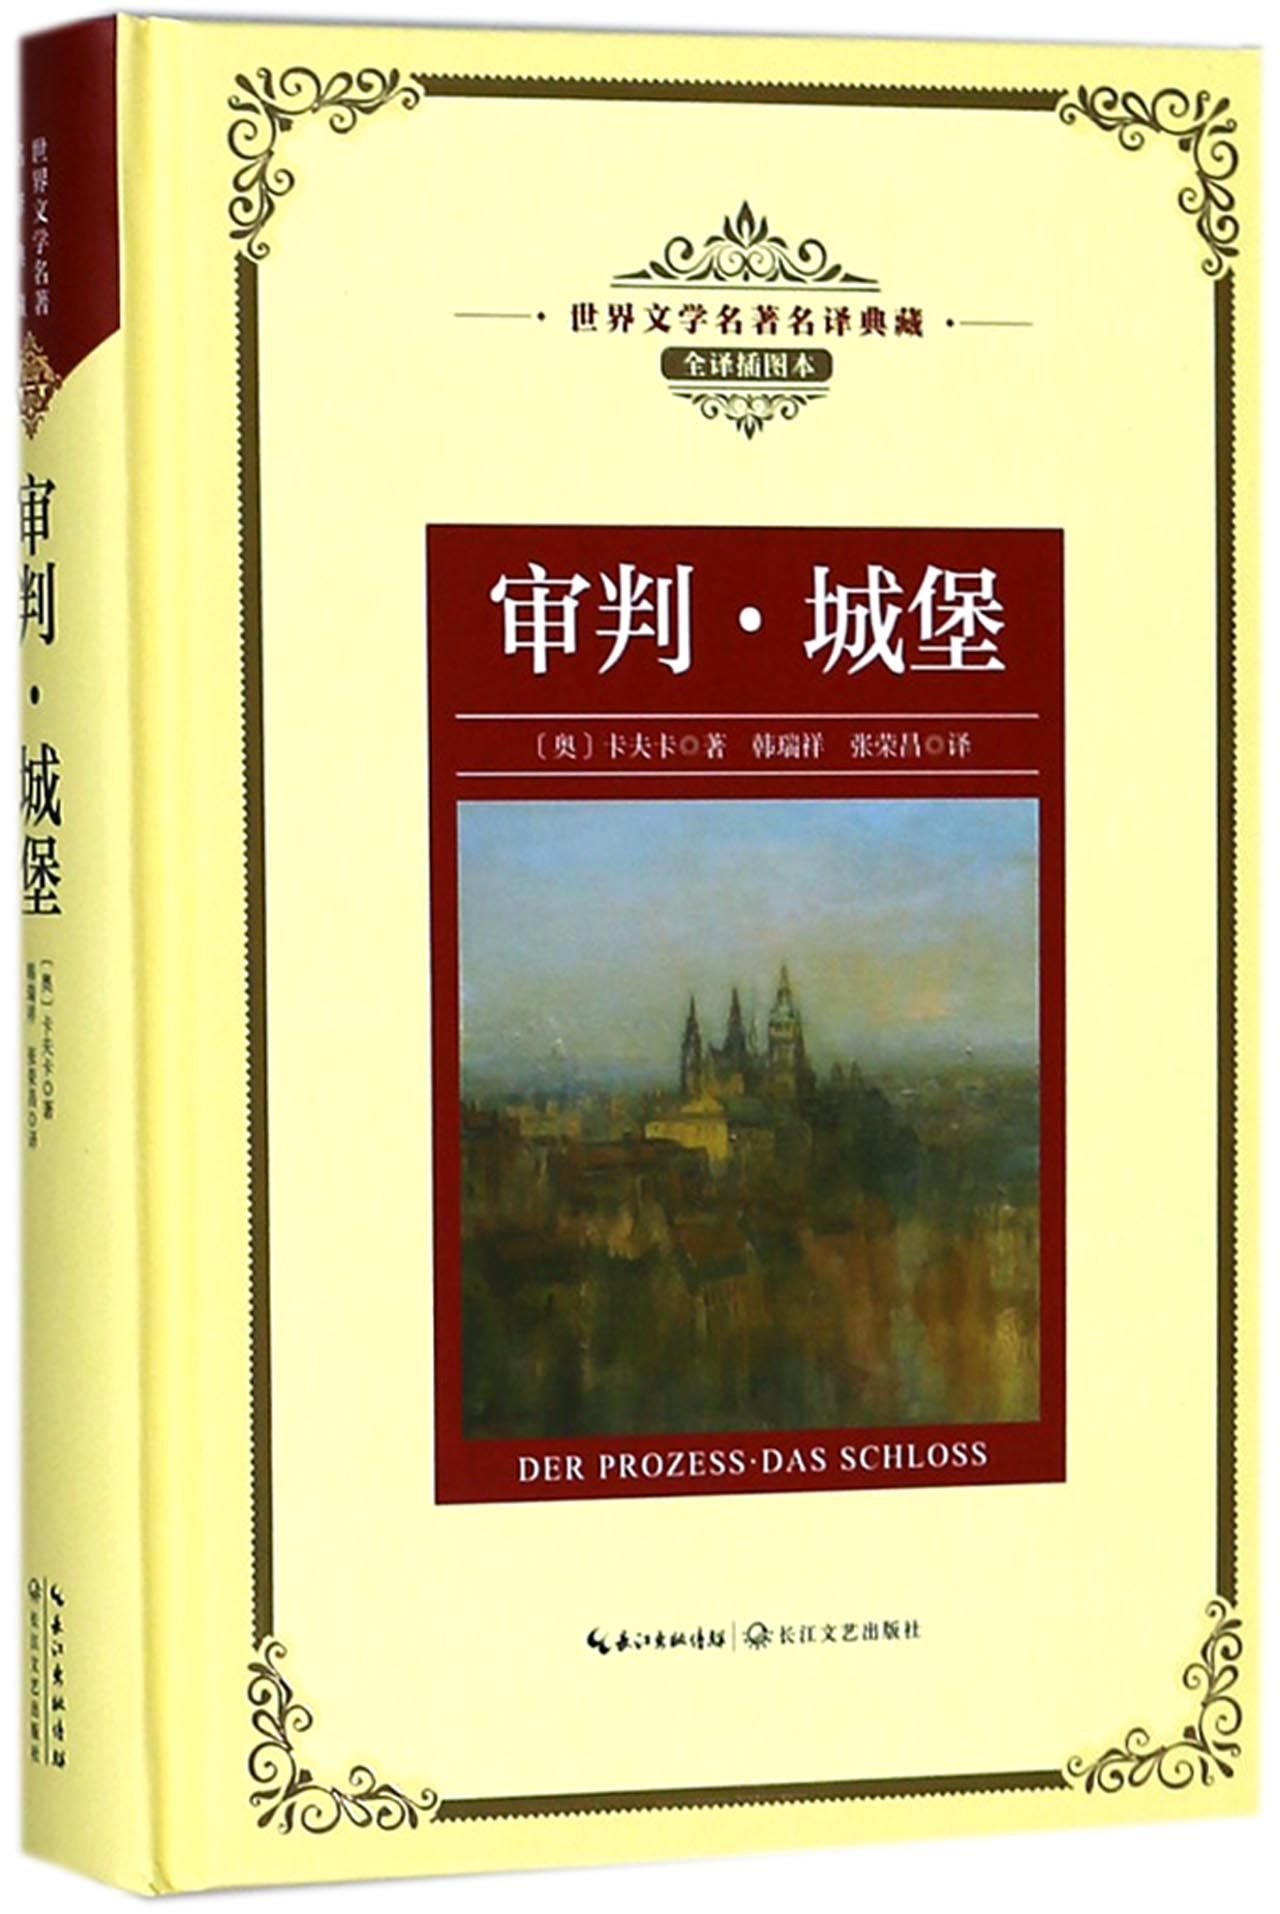 Download The Trial & The Castle (with Pictures)(Hardcover)/ Translation of World Classics (Chinese Edition) PDF